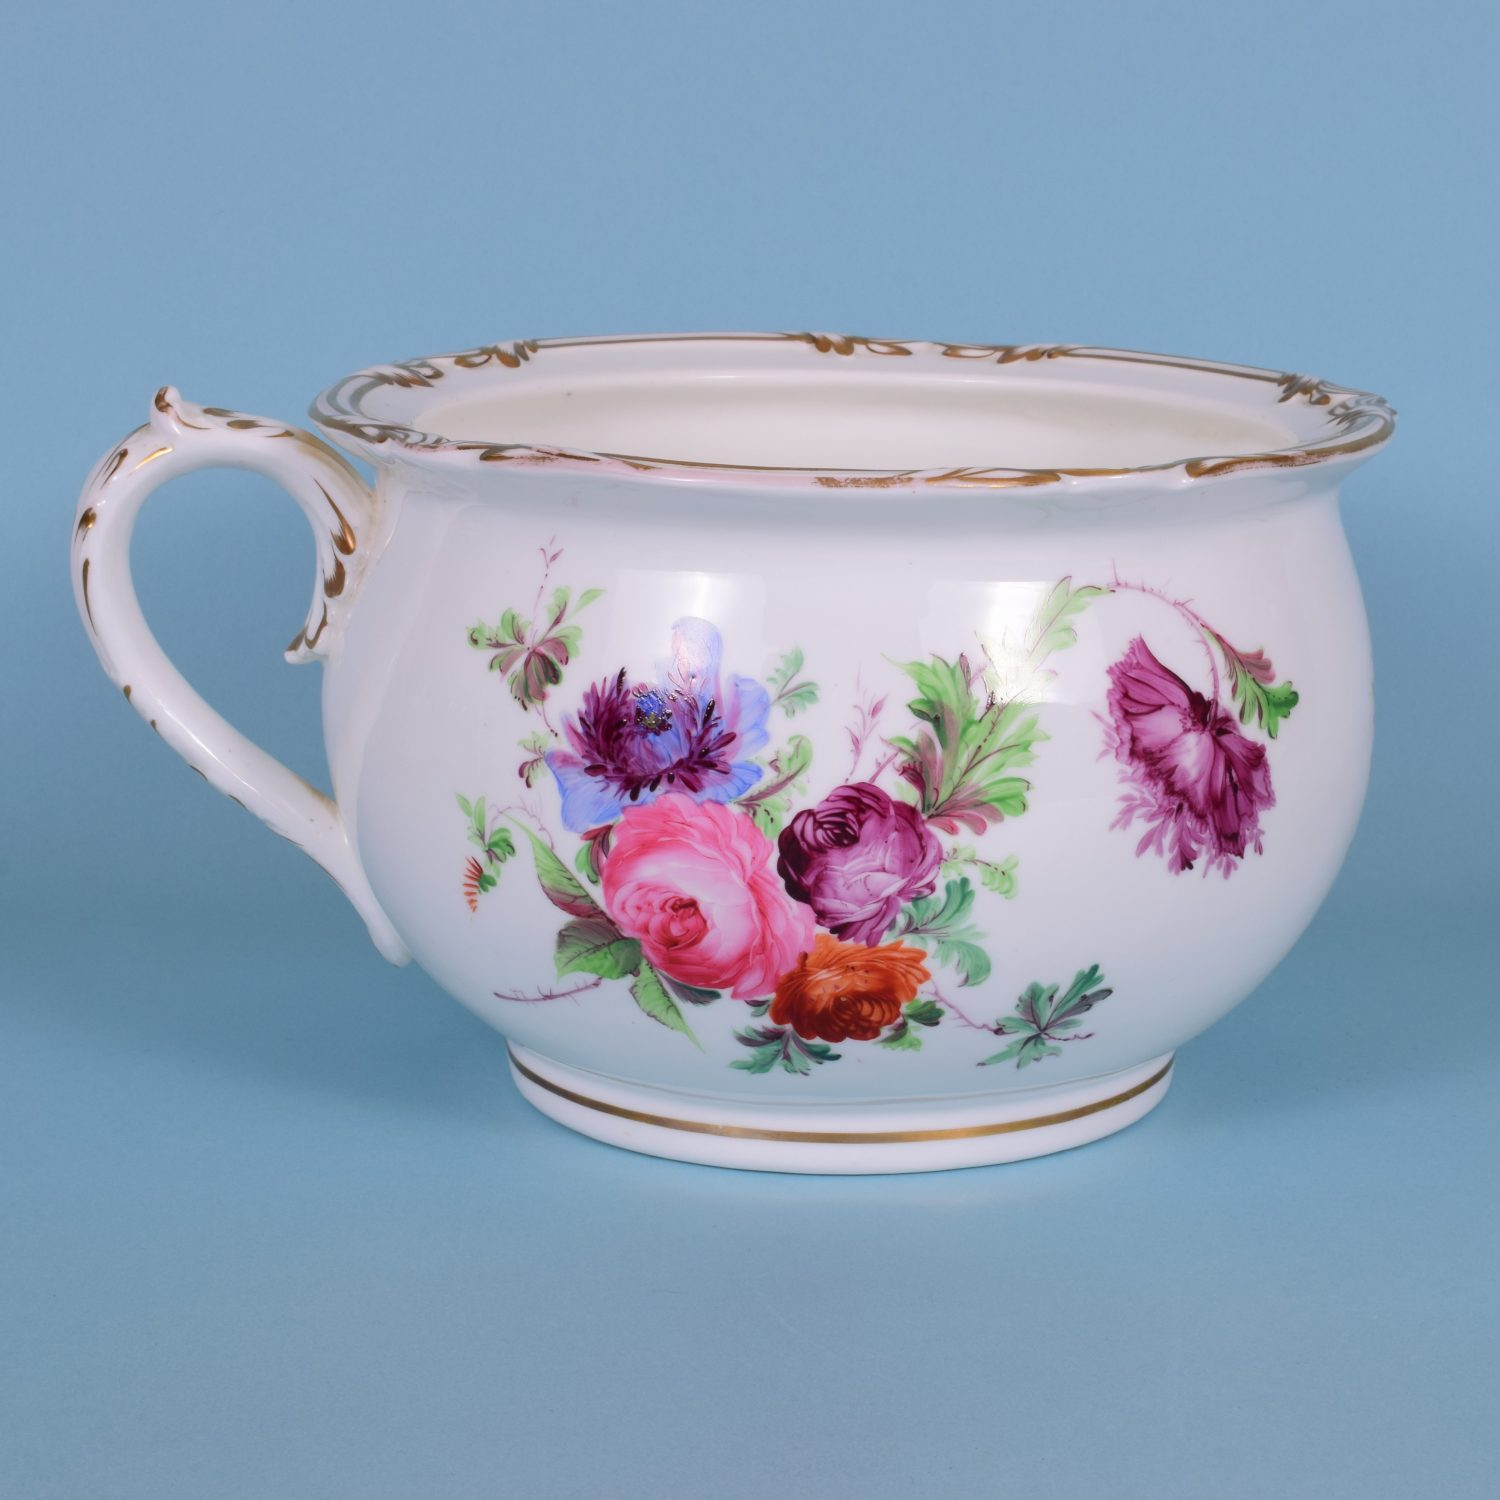 Pair of English Porcelain Chamber Pots, c1850